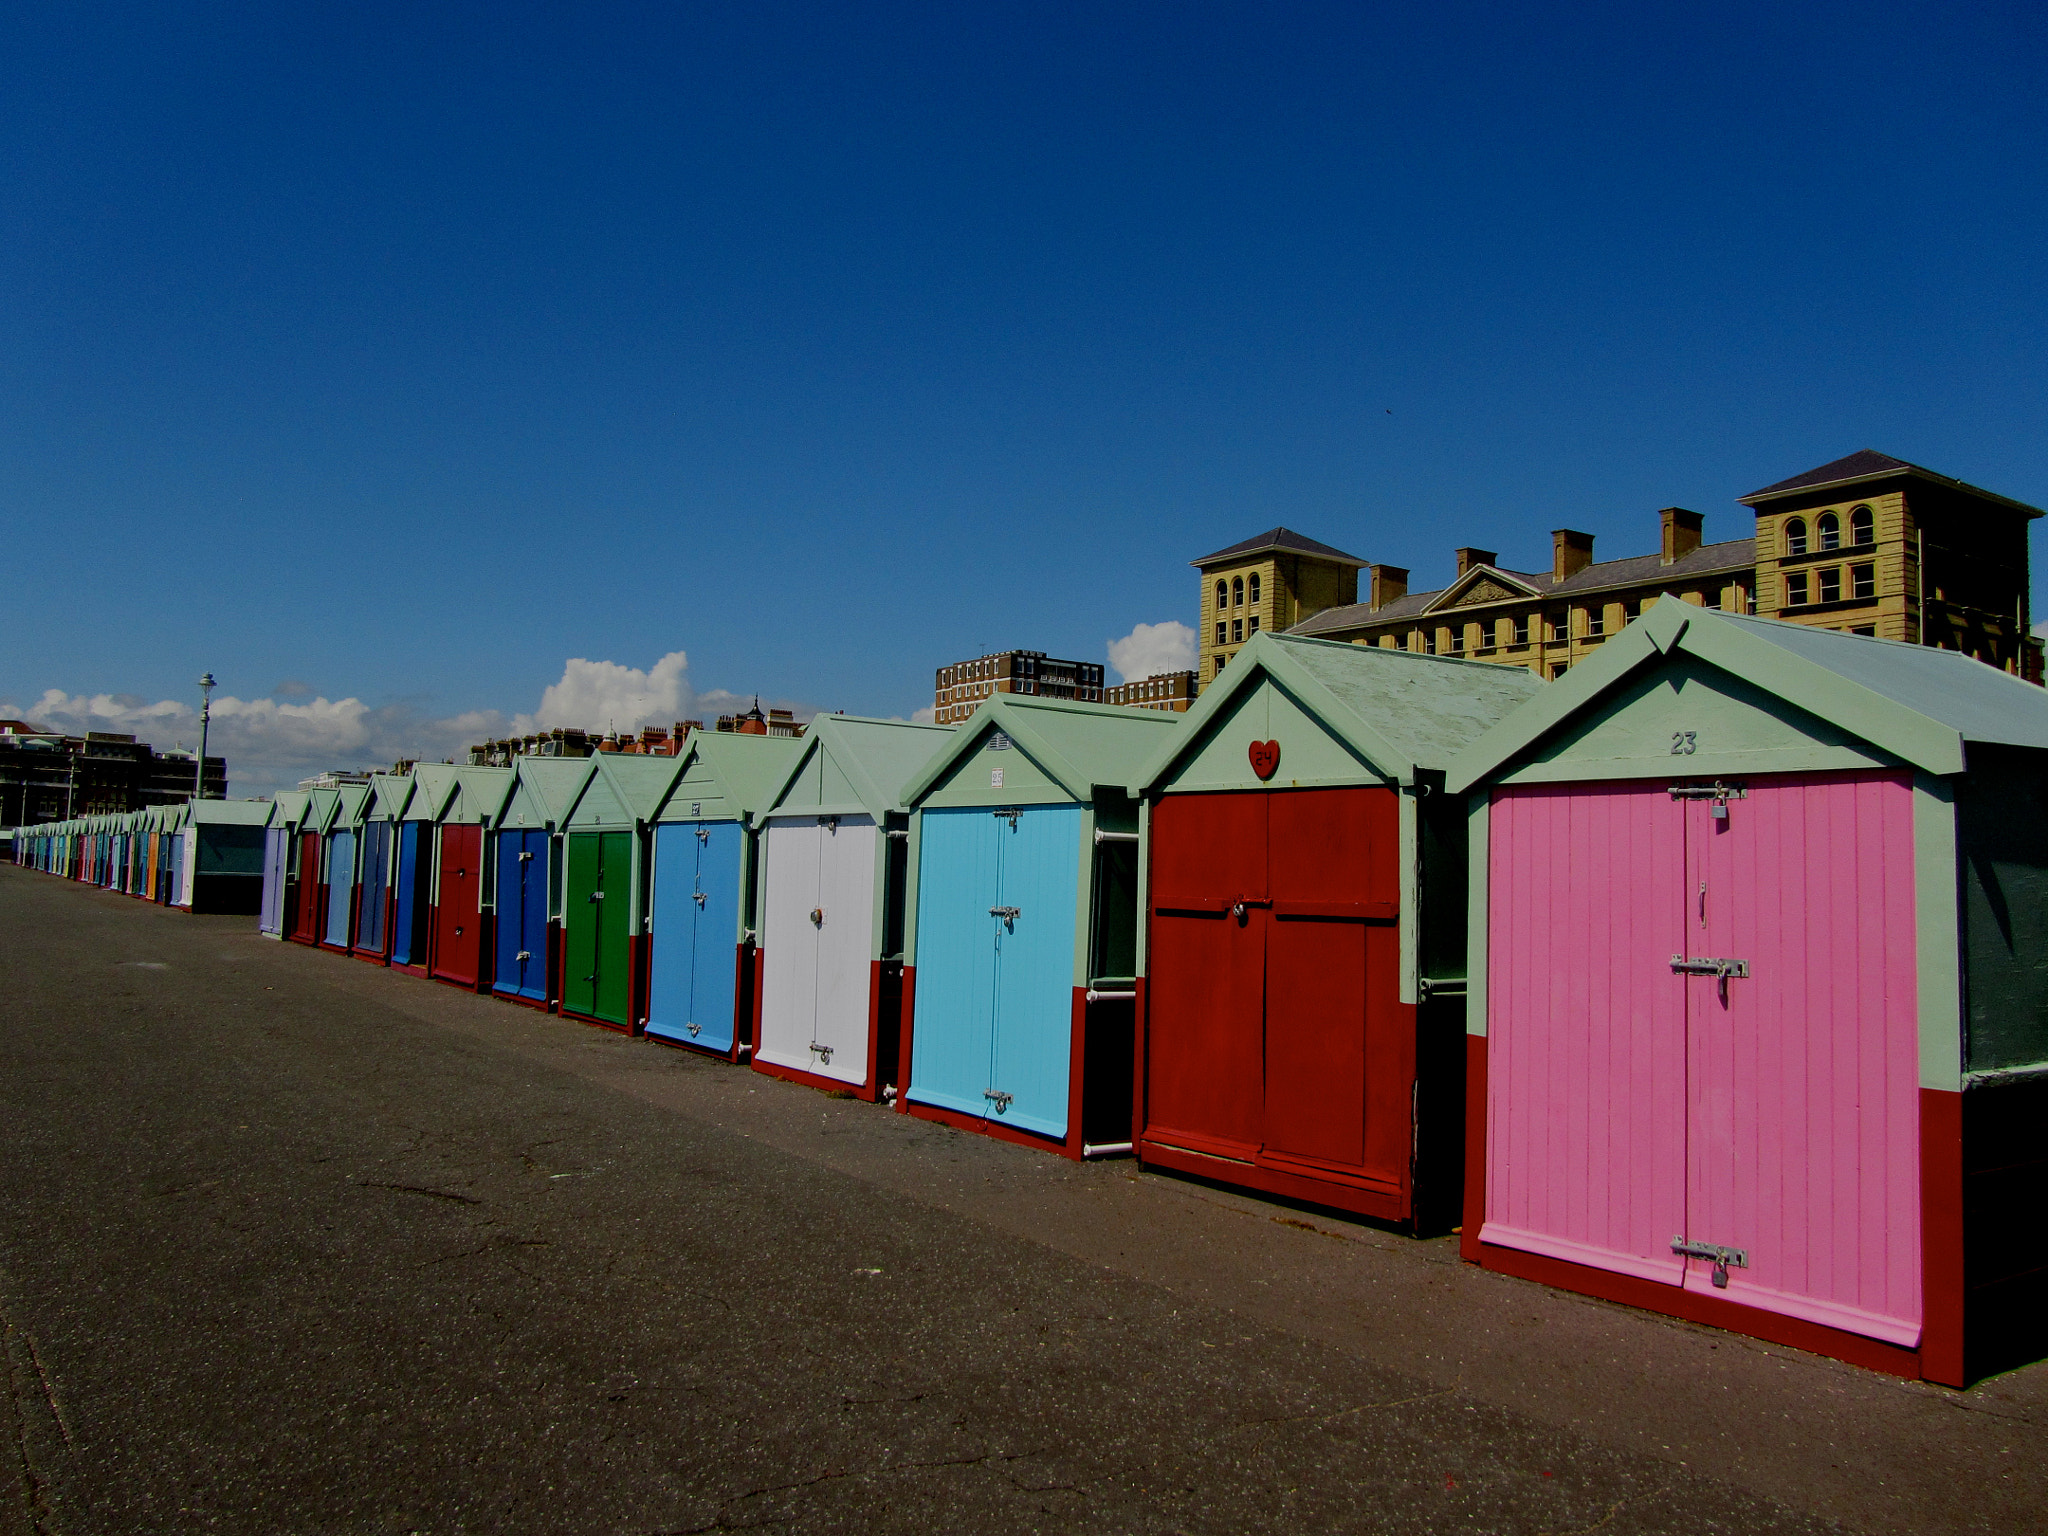 Photograph Beach Huts Hove by Audrey H on 500px